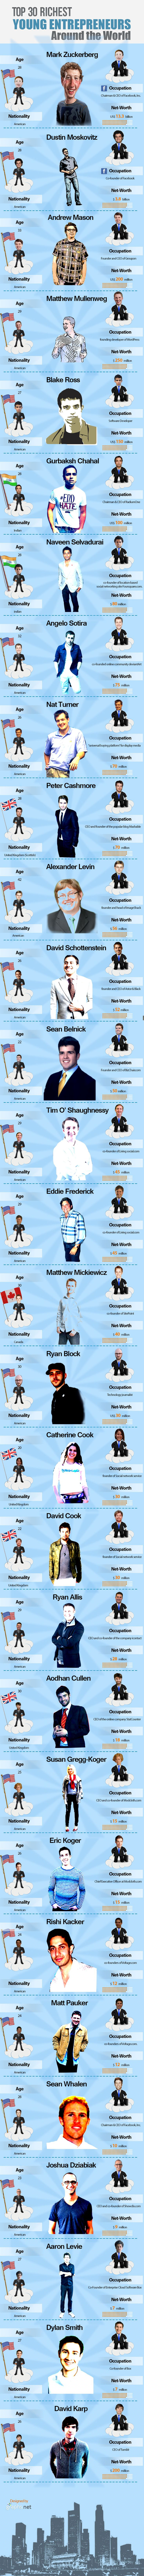 Worlds Richest And Youngest Entrepreneurs